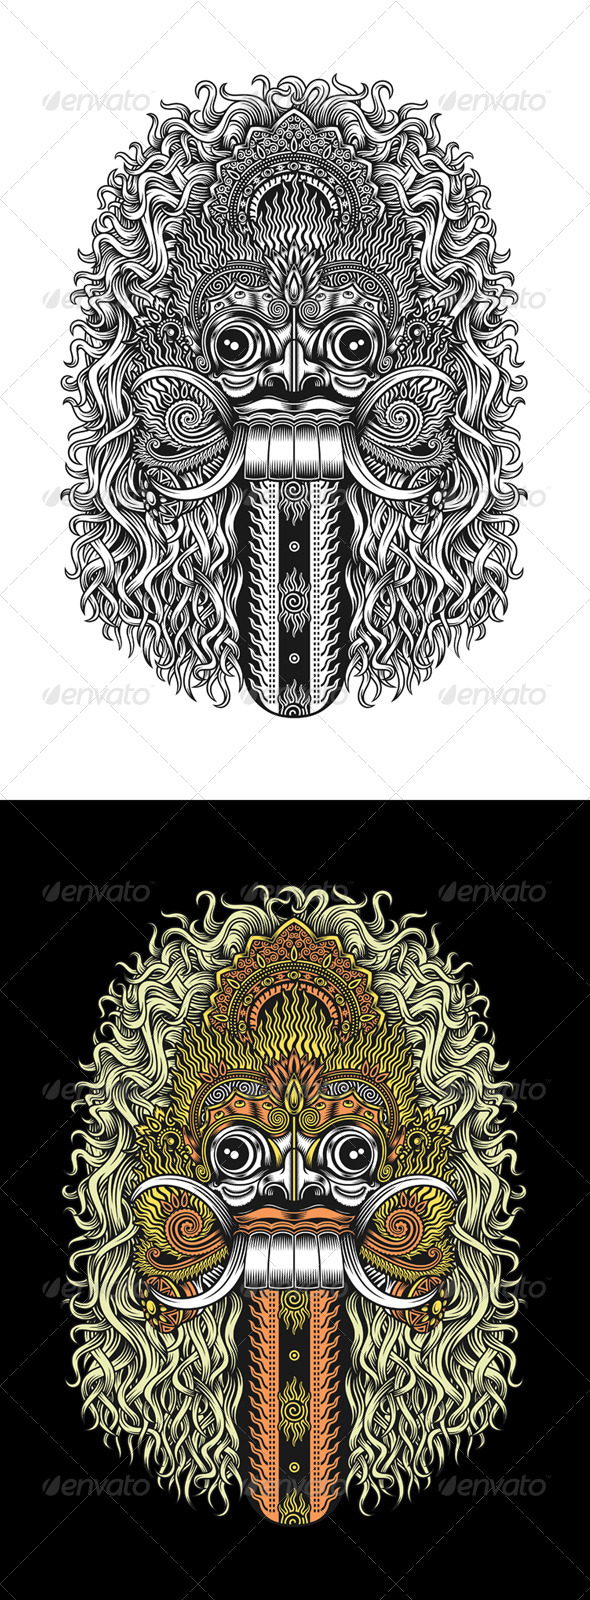 GraphicRiver Balinese Demon Mask 7975550